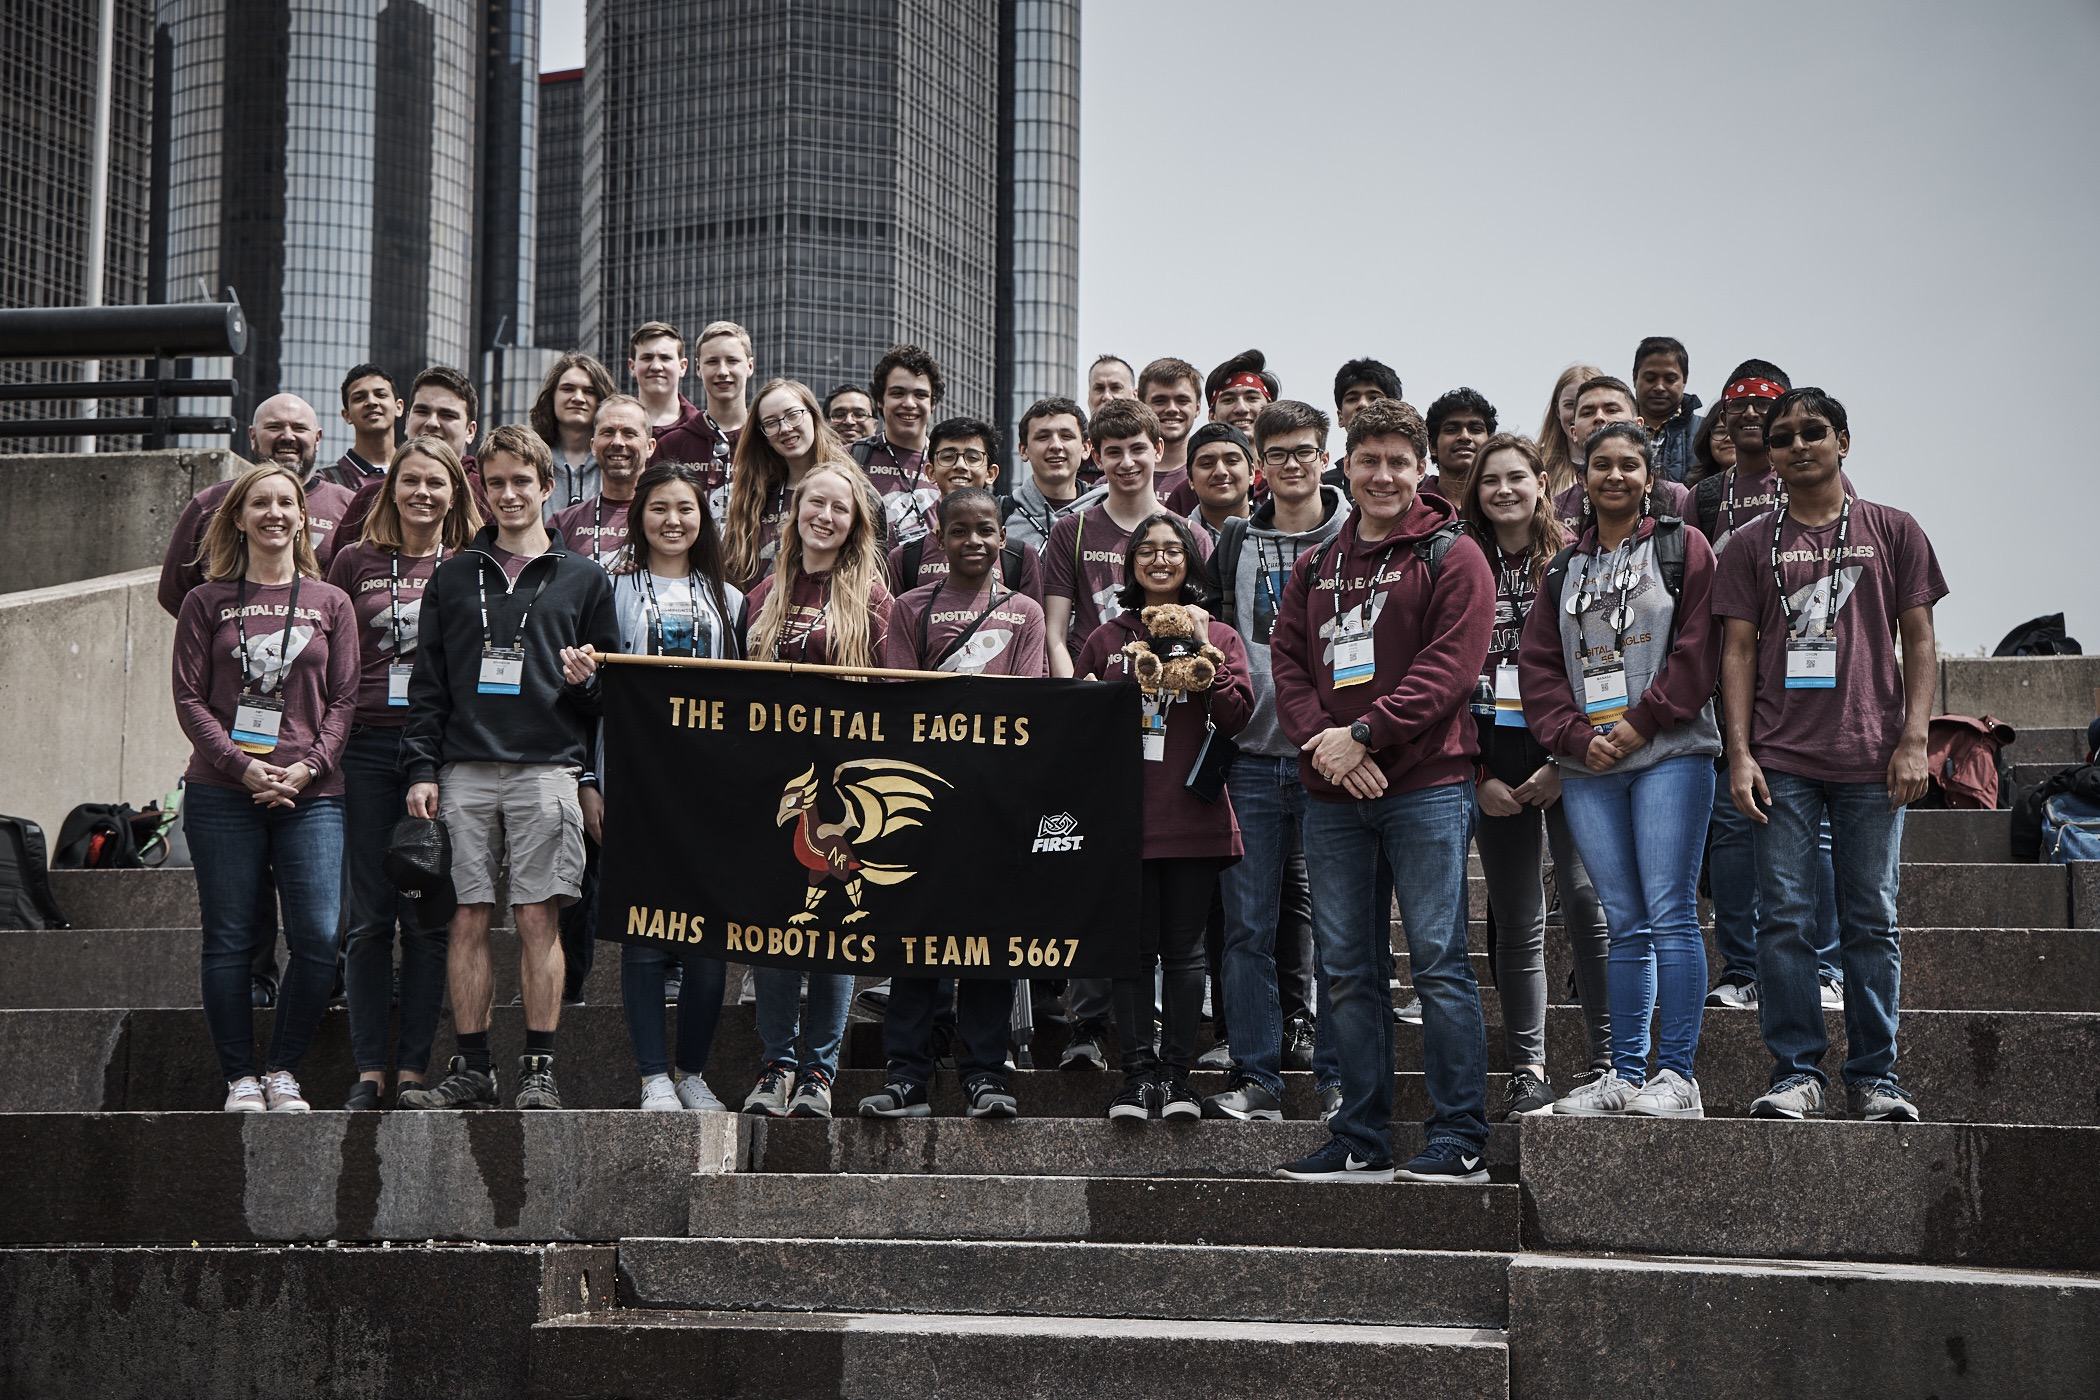 NEW_ALBANY_DIGITAL_EAGLES_AT_WORLD_10.jpg